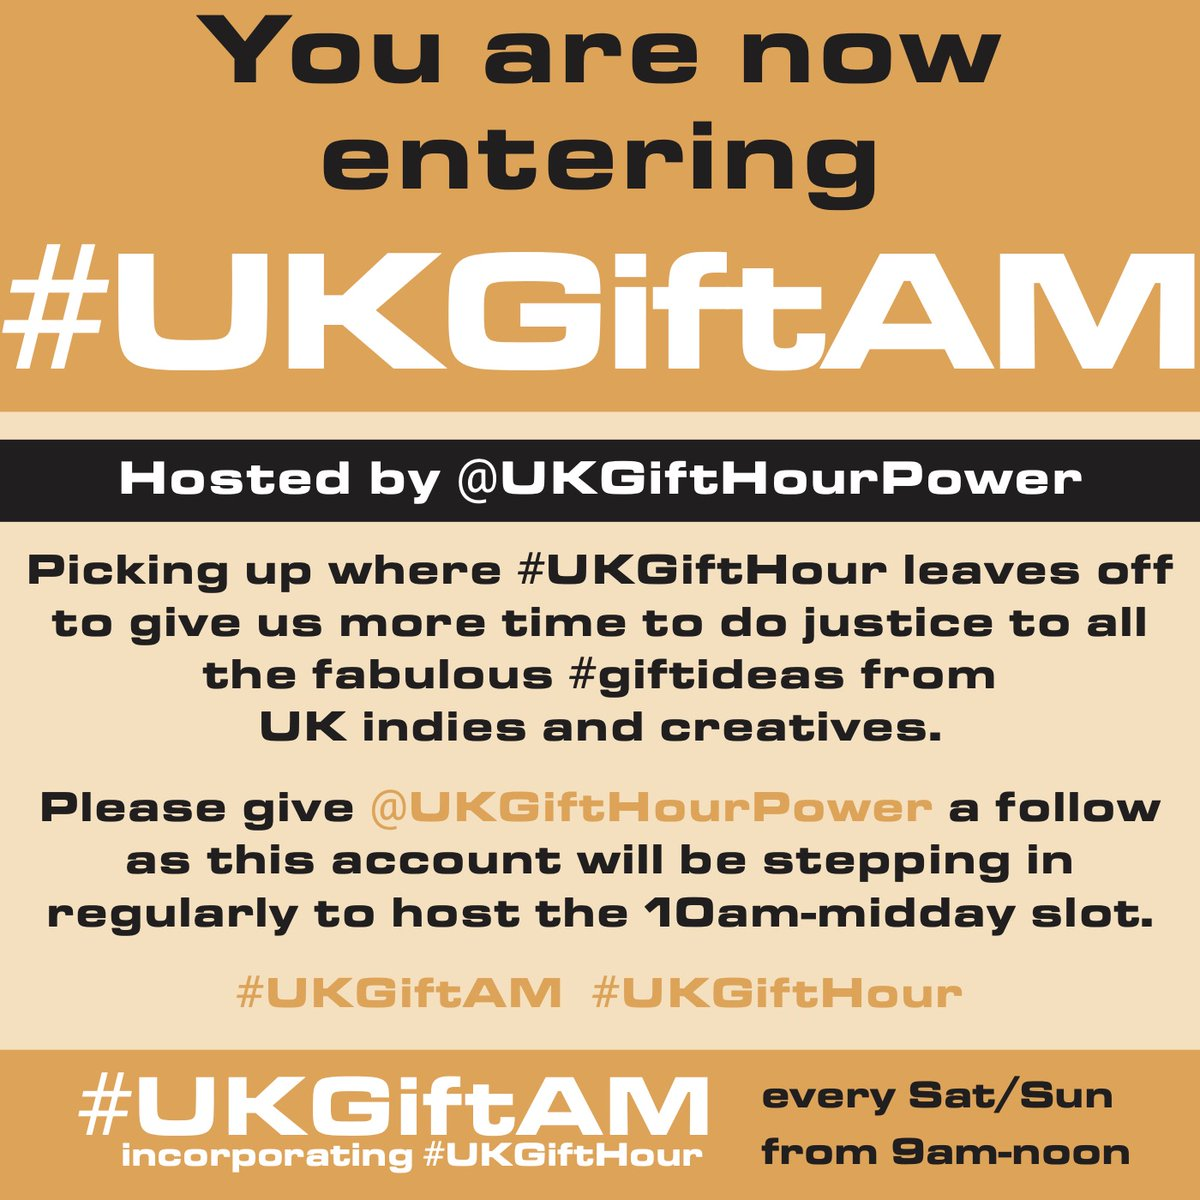 You are now entering #UKGIftAM! As you know, @UKGiftHour is usually running behind so when that account catches up to 10am, hosting will be taken over by @UKGiftHourPower. Keep using either hashtag to spread the #shopindie message #supportsmallbusiness #SundayMorning #giftfinder